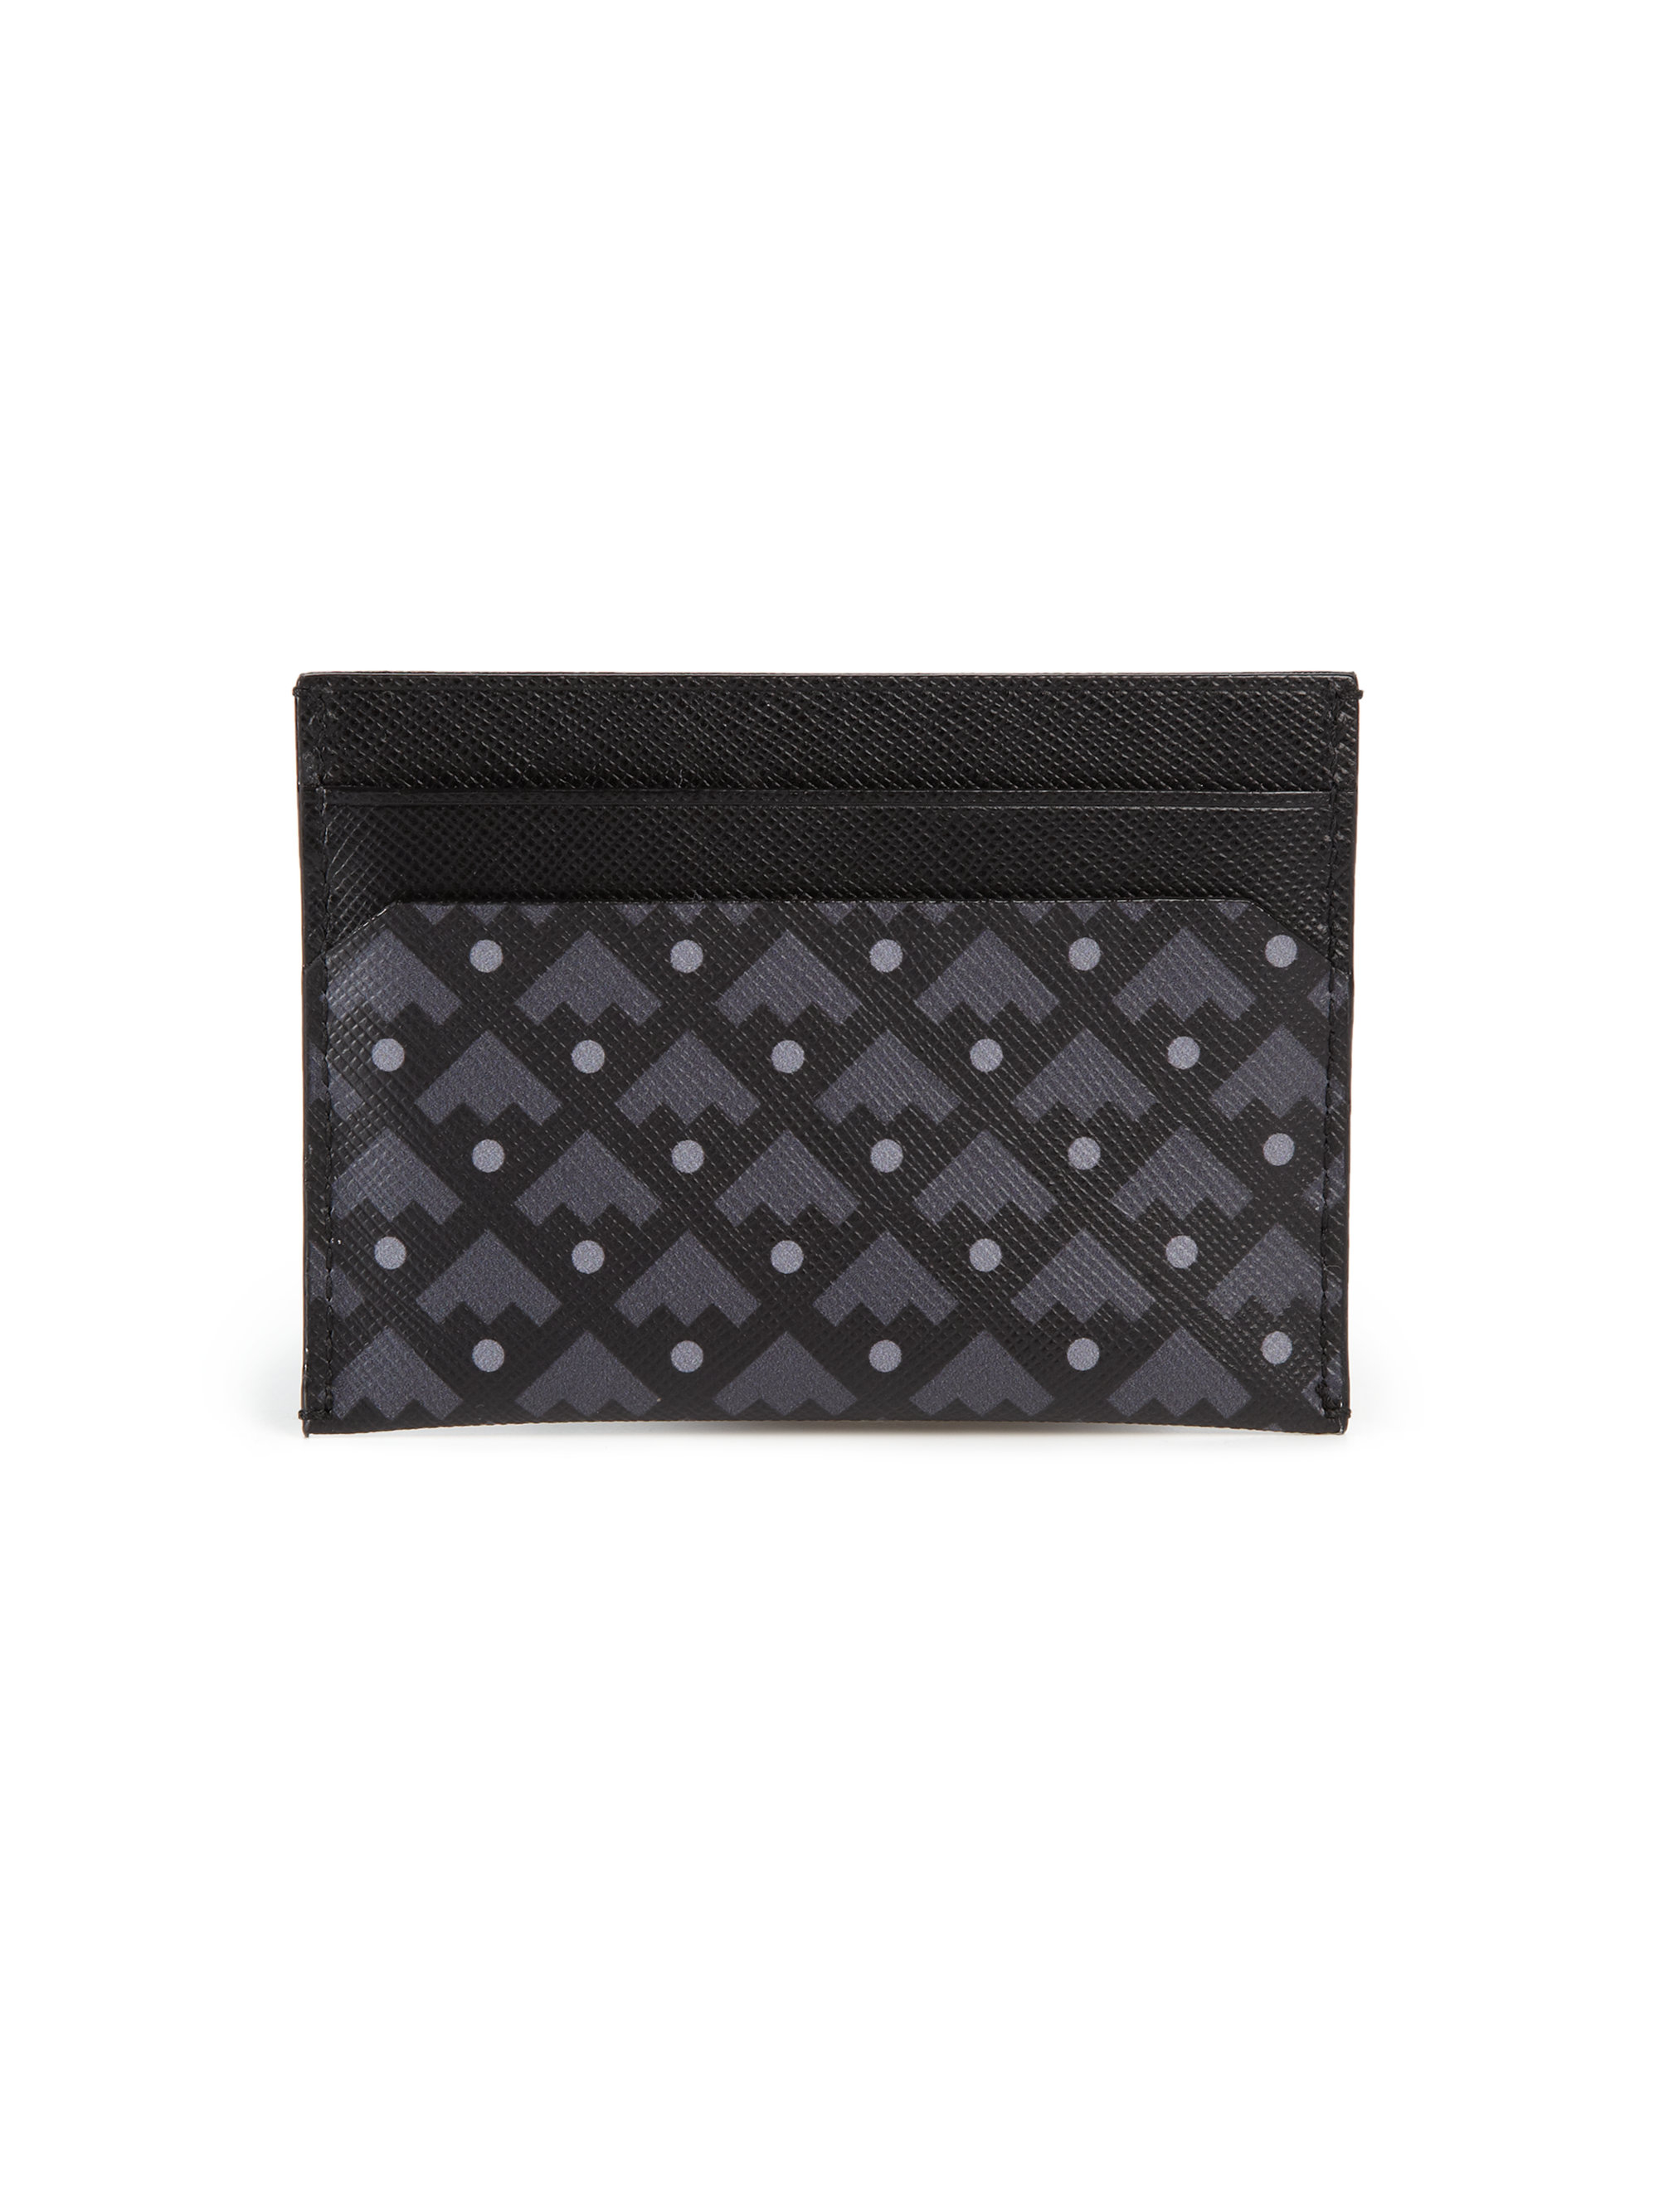 Lyst - Bally Coated Canvas Business Card Holder in Black for Men